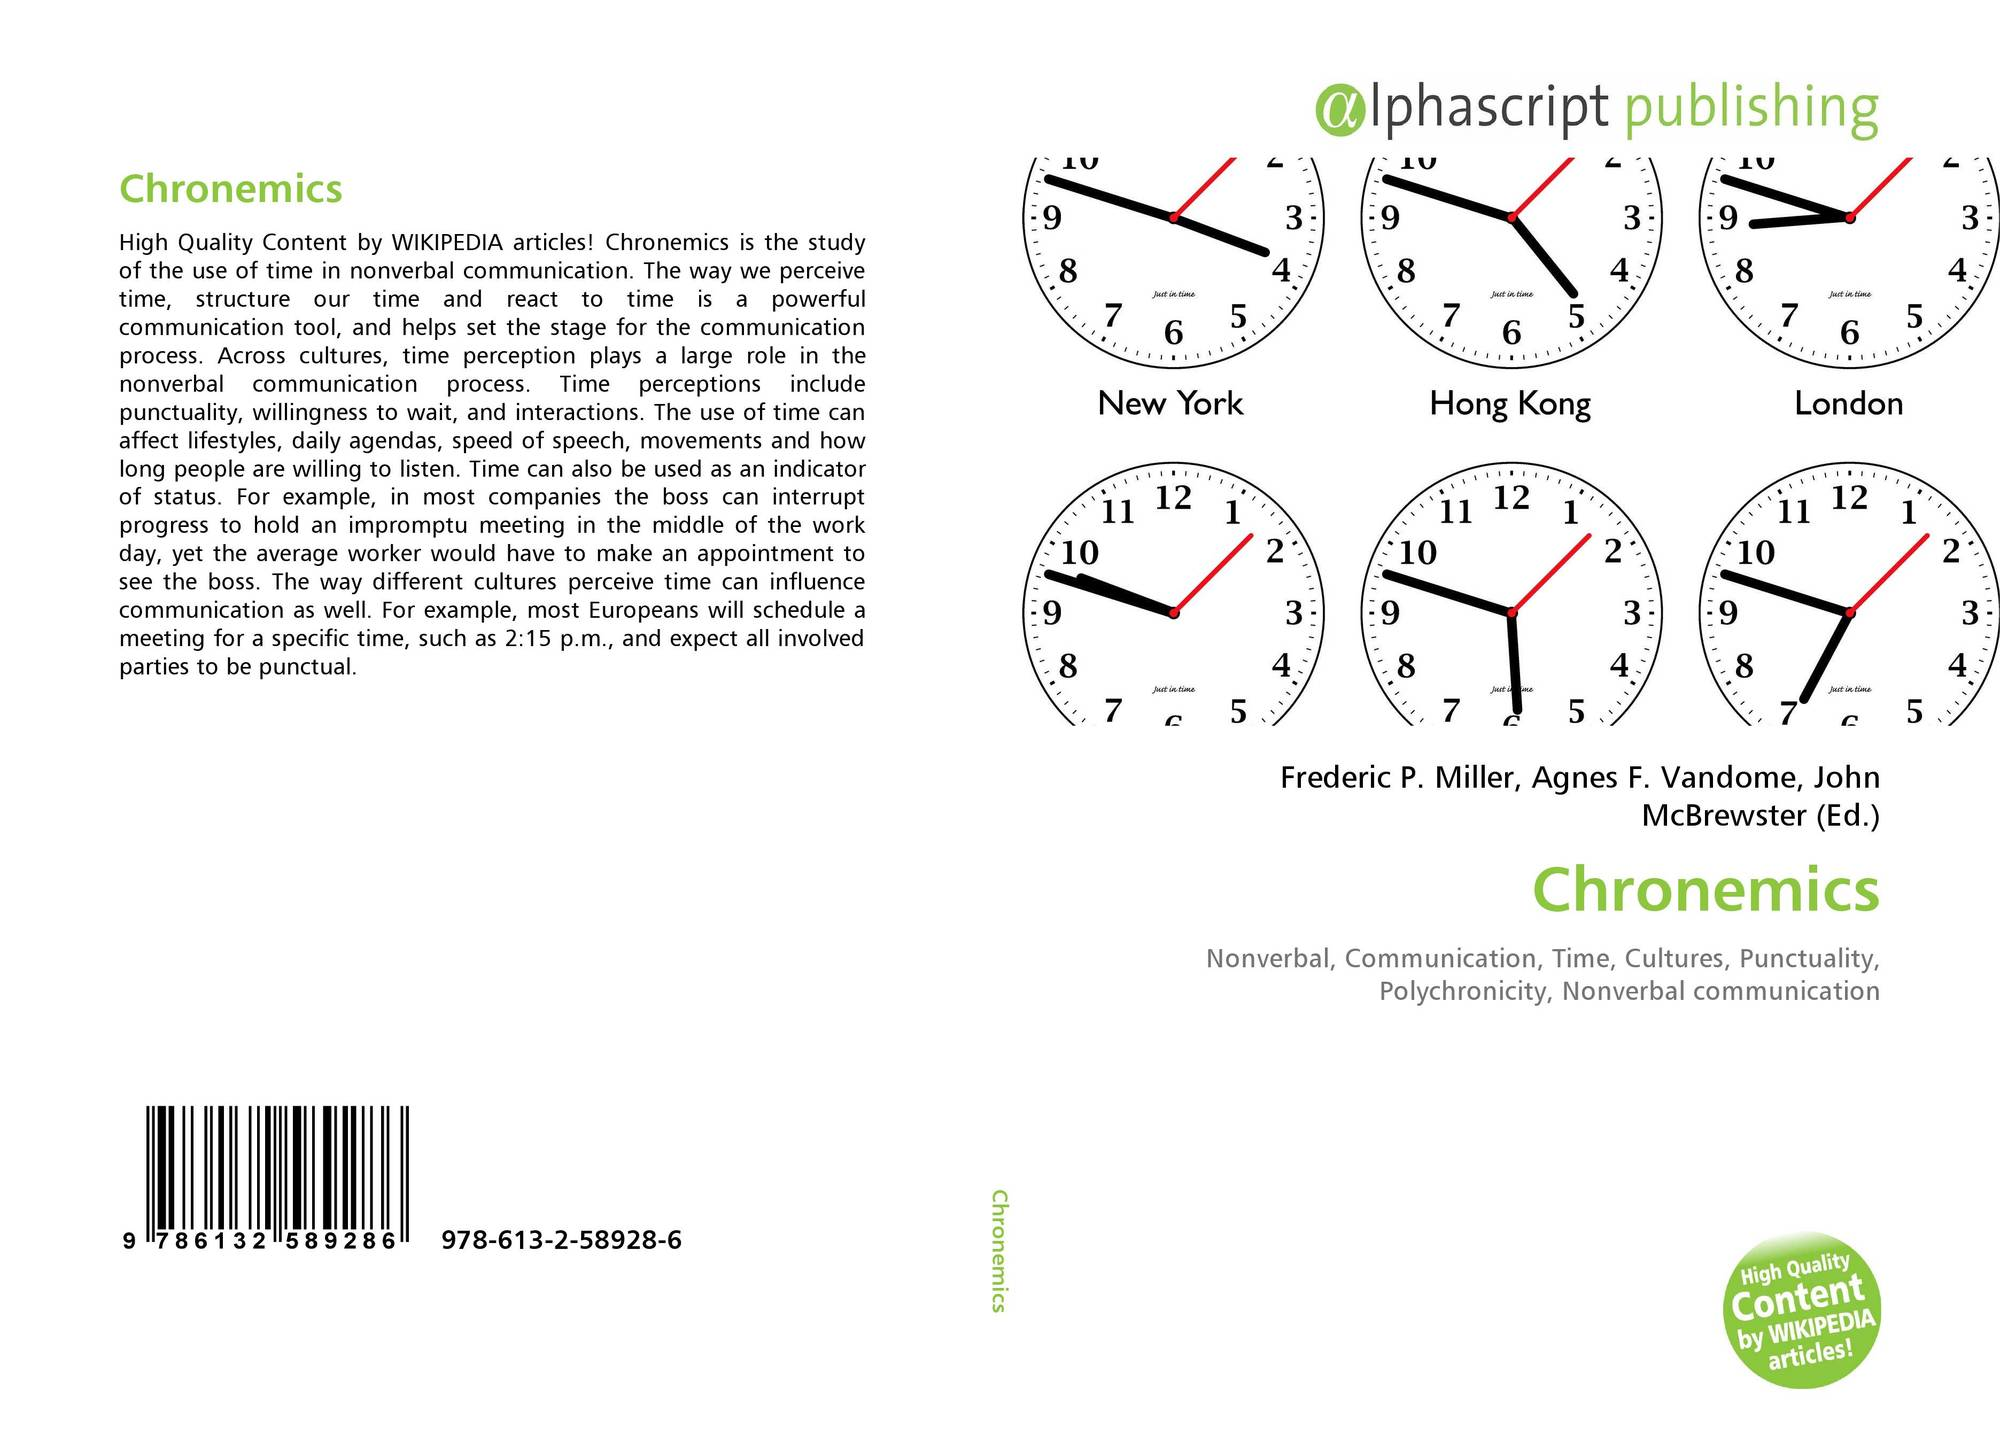 Chronemics 978 613 2 58928 6 6132589287 9786132589286 Time perceptions include punctuality, willingness to wait, interactions, daily agenda planning, speed of speech, movements. chronemics 978 613 2 58928 6